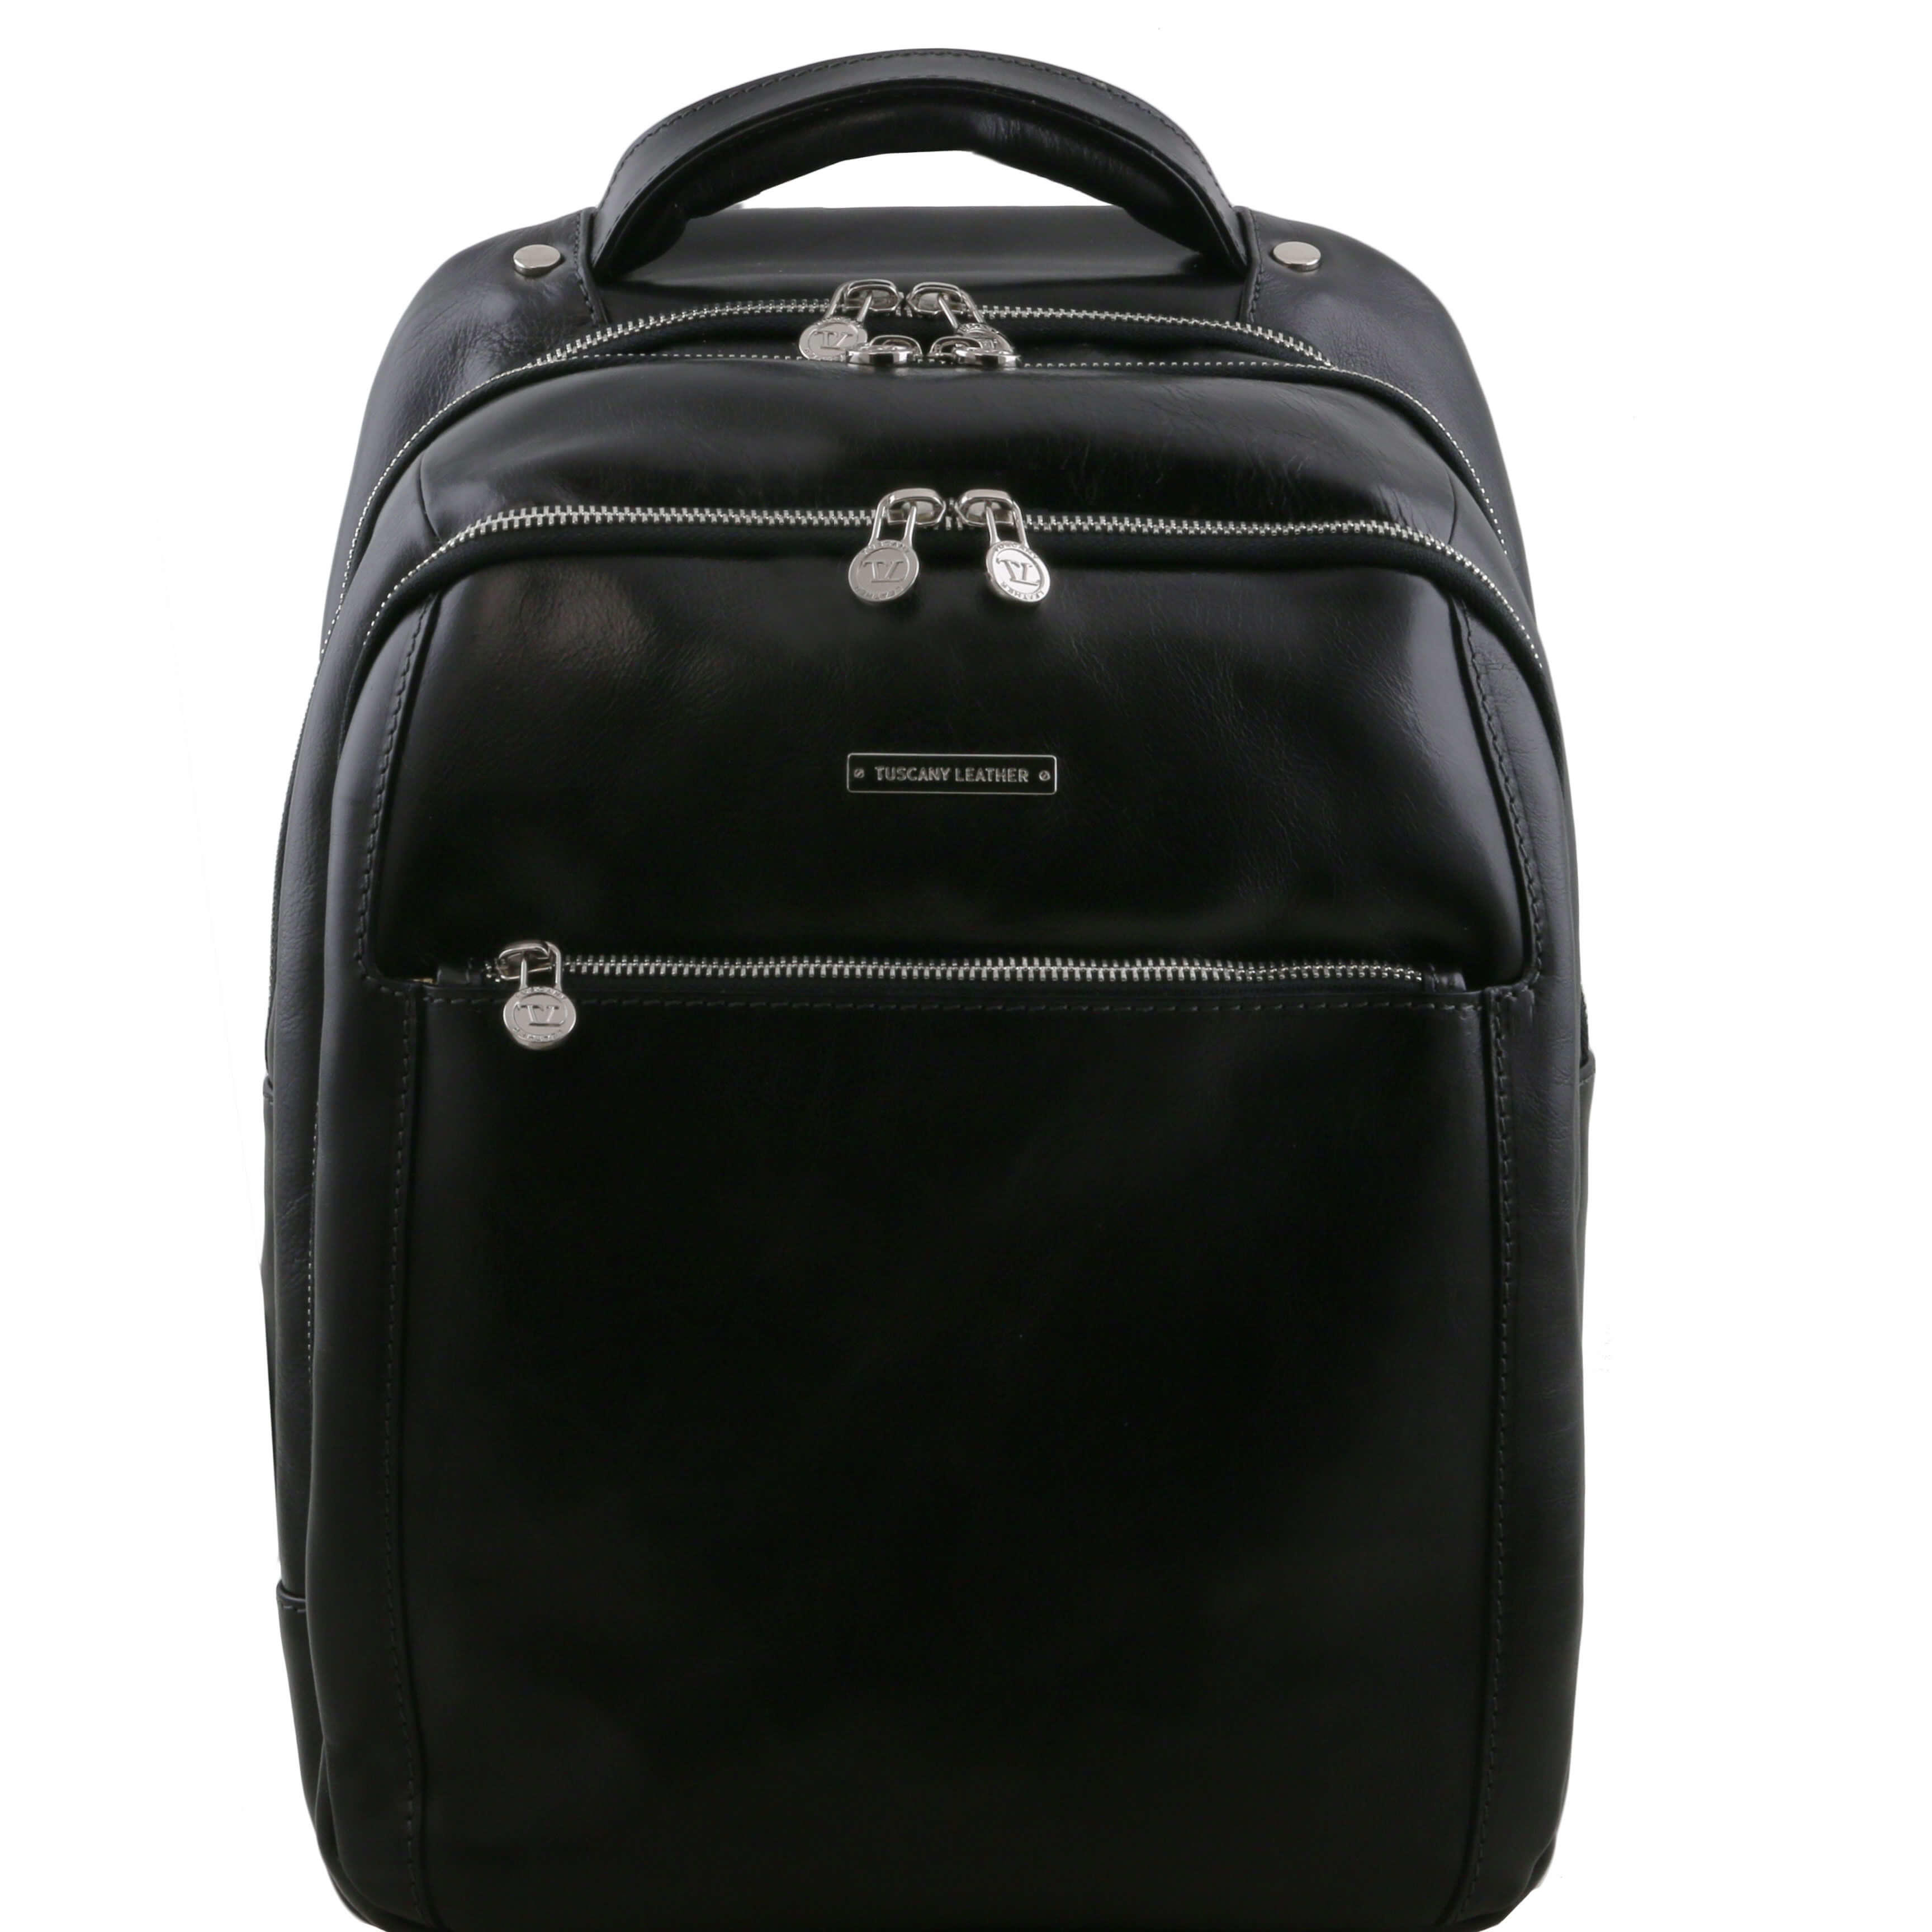 TL141402 Phuket Leather Backpack-Rucksack-Holdall-Bag 3 Compartments in Black